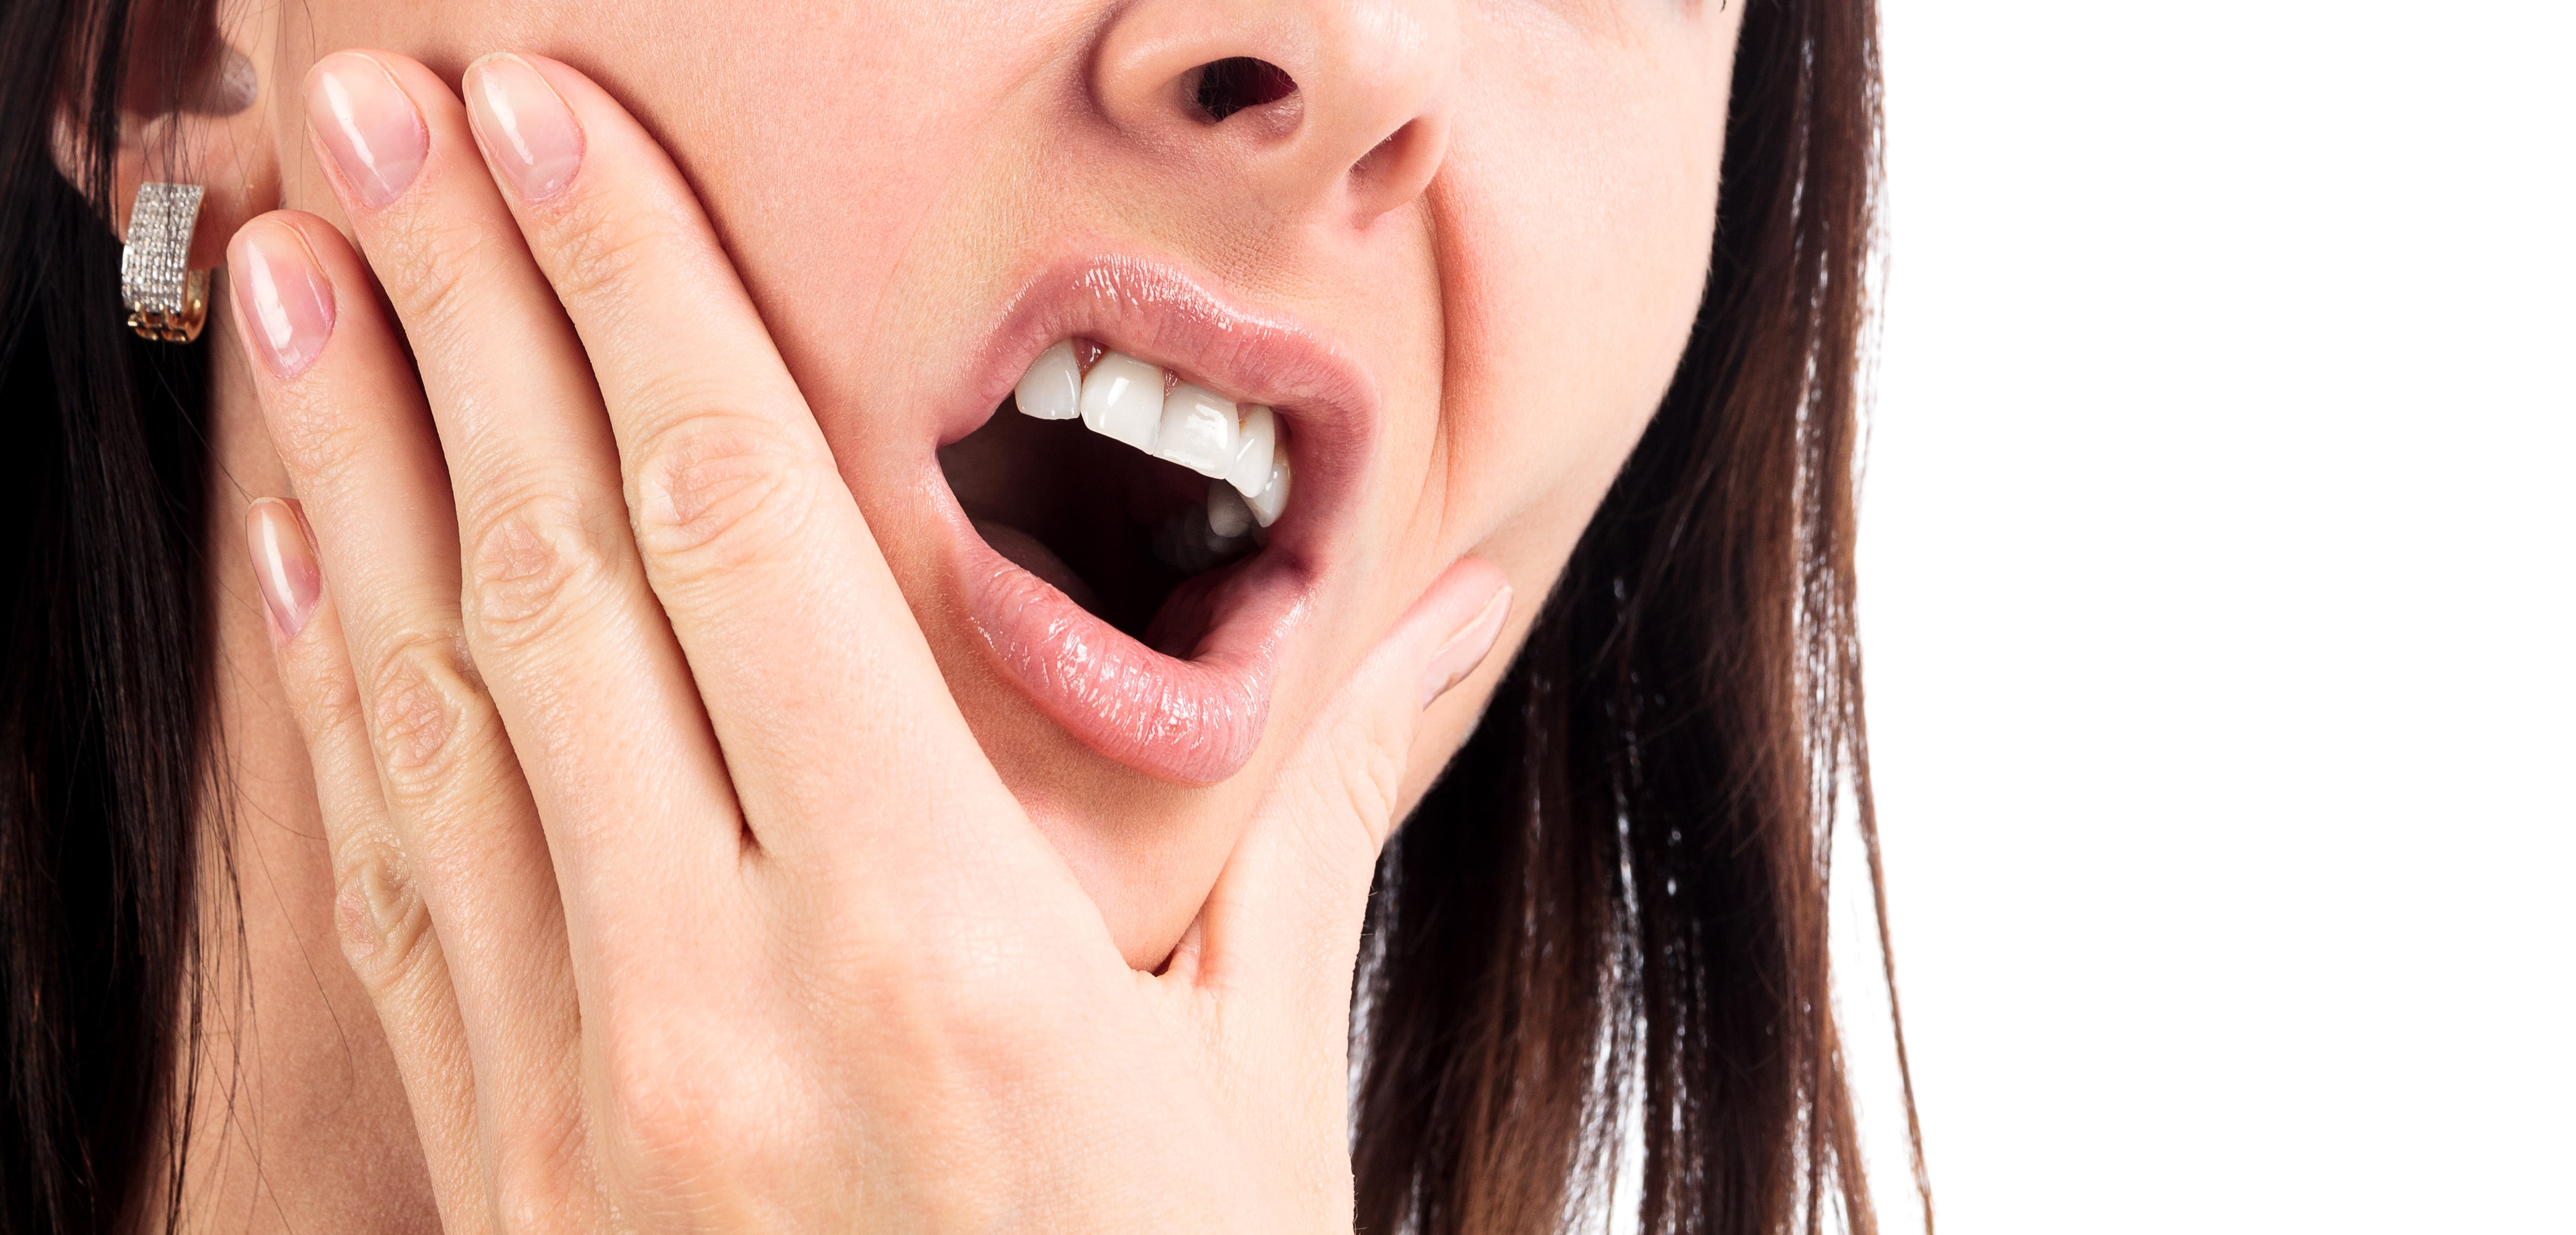 Tooth Abscess Causes Symptoms And Treatments